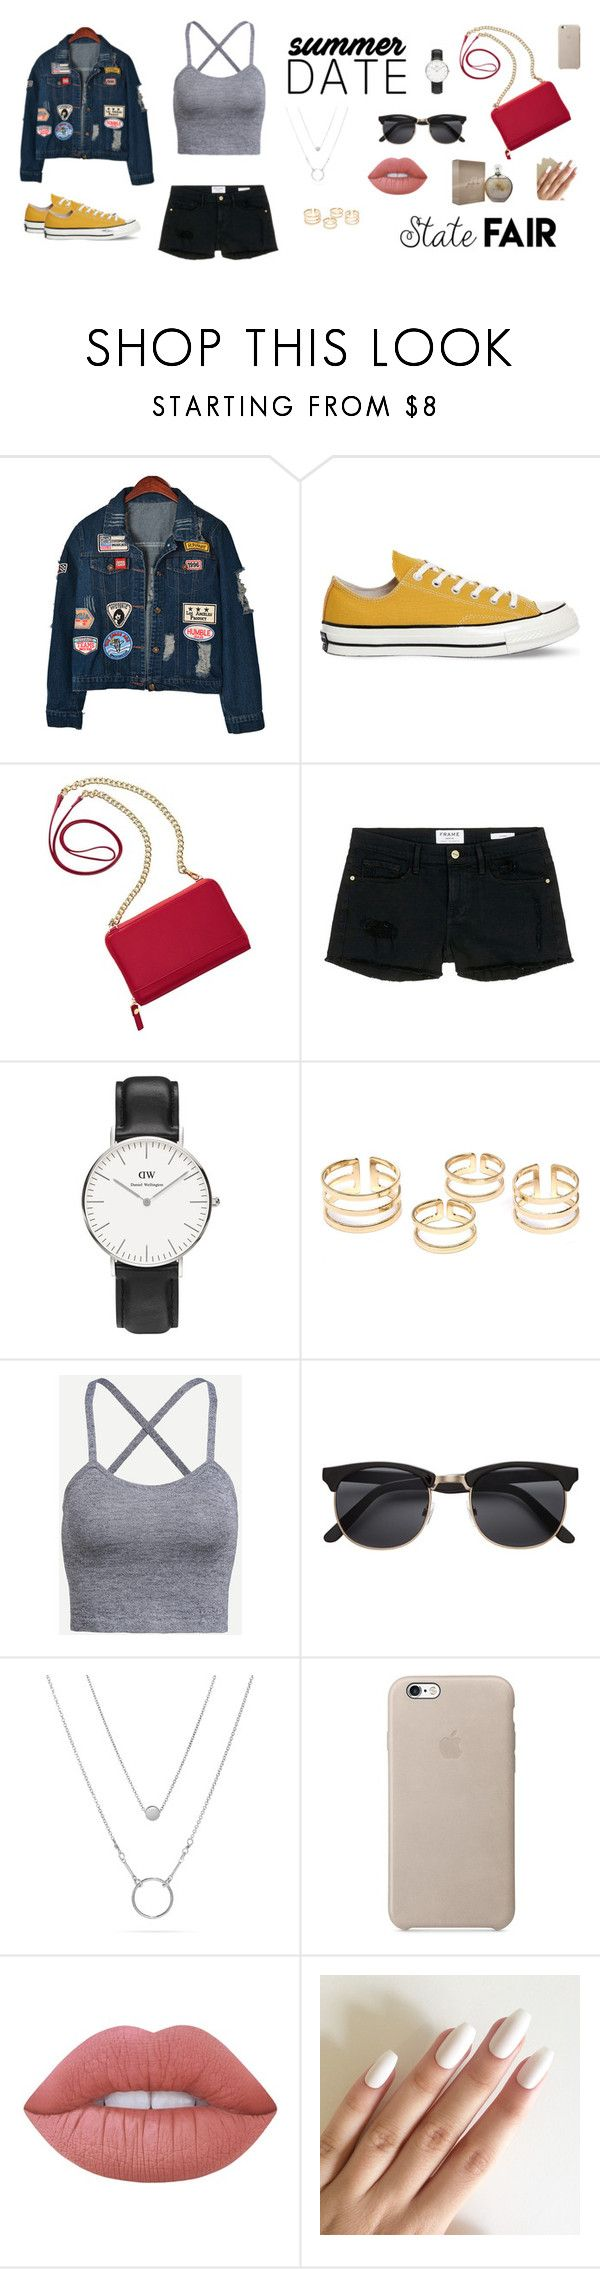 """Summer Date, Sate Fair// Cita en el verano, feria estatal."" by smmtmd on Polyvore featuring moda, Chicnova Fashion, Converse, TravelSmith, Frame Denim, Daniel Wellington, Lime Crime, Jennifer Lopez, statefair y summerdate"